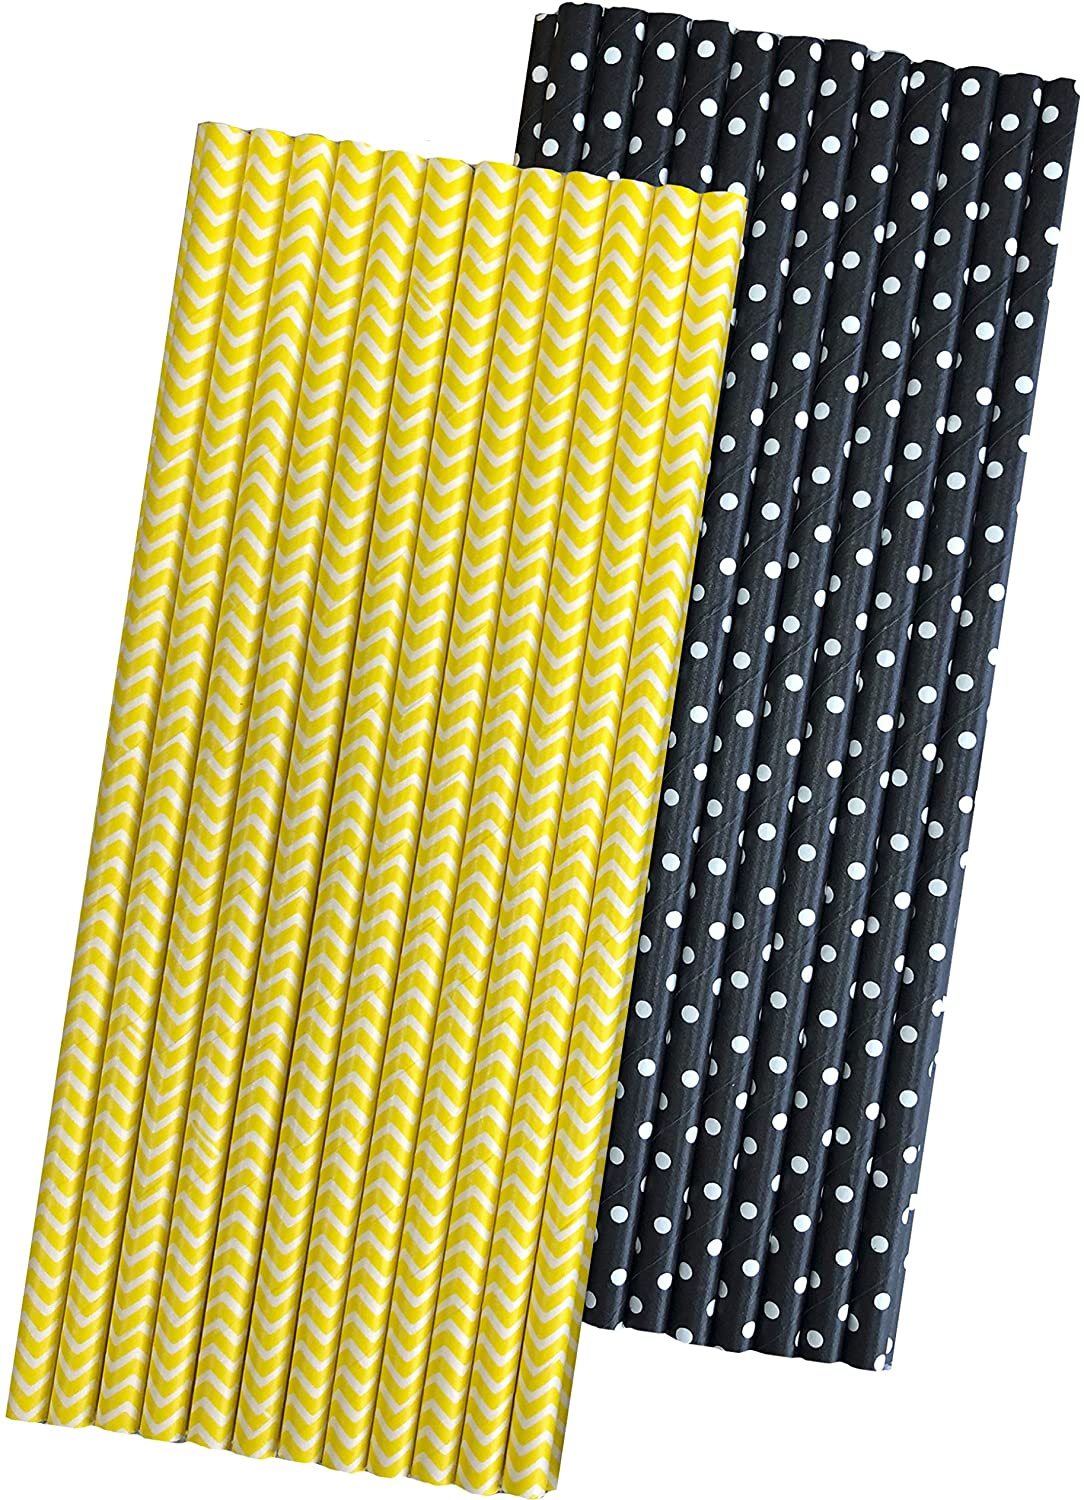 Bee Theme Striped and Polka Dot Paper Straws - Black Yellow White - 50 Pack Outside the Box Papers Brand